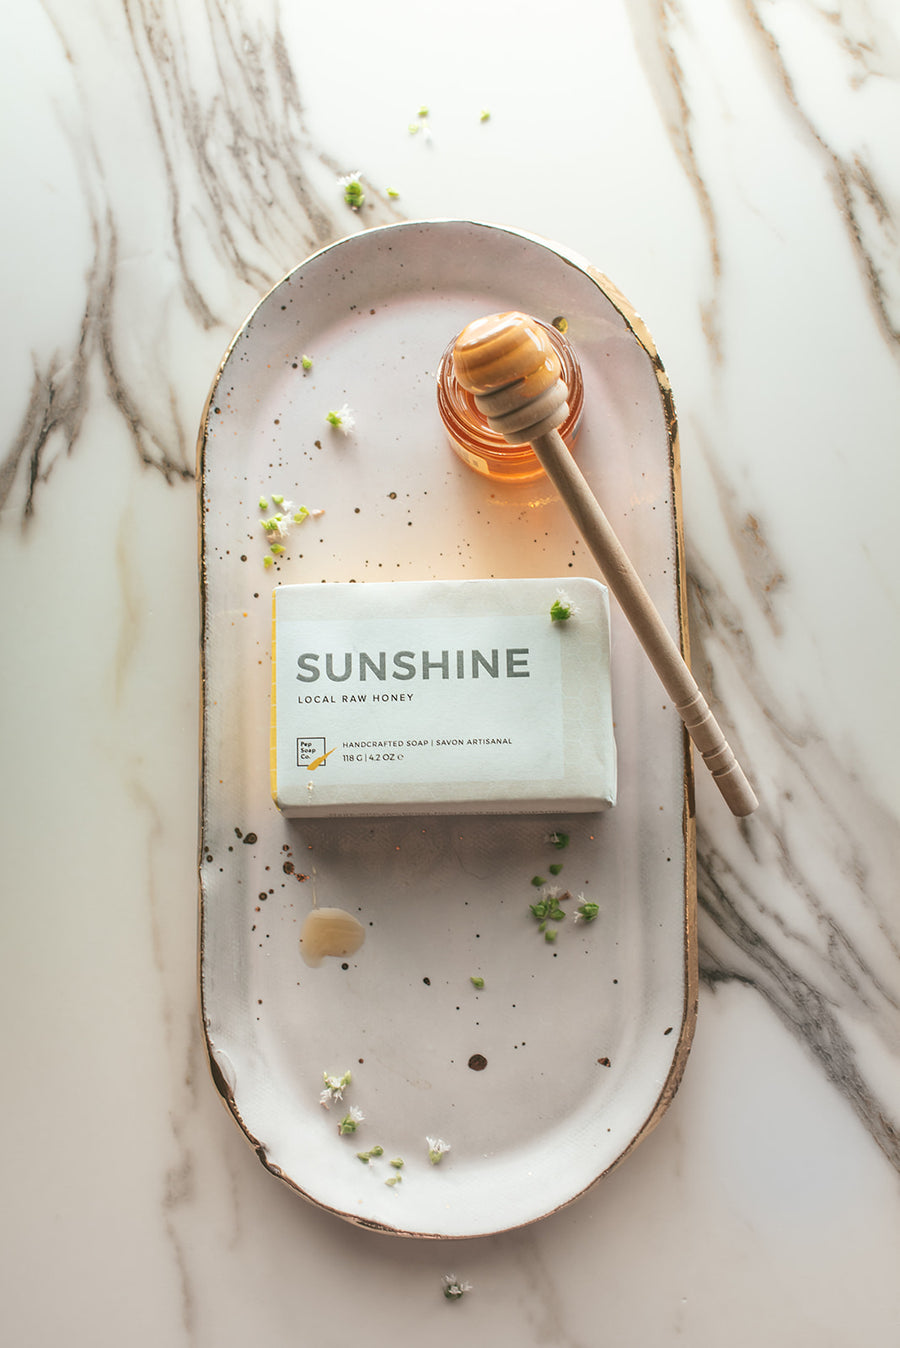 Honey Soap SUNSHINE by Pep Soap Co. with locally sourced raw honey from BC's Fraser Valley